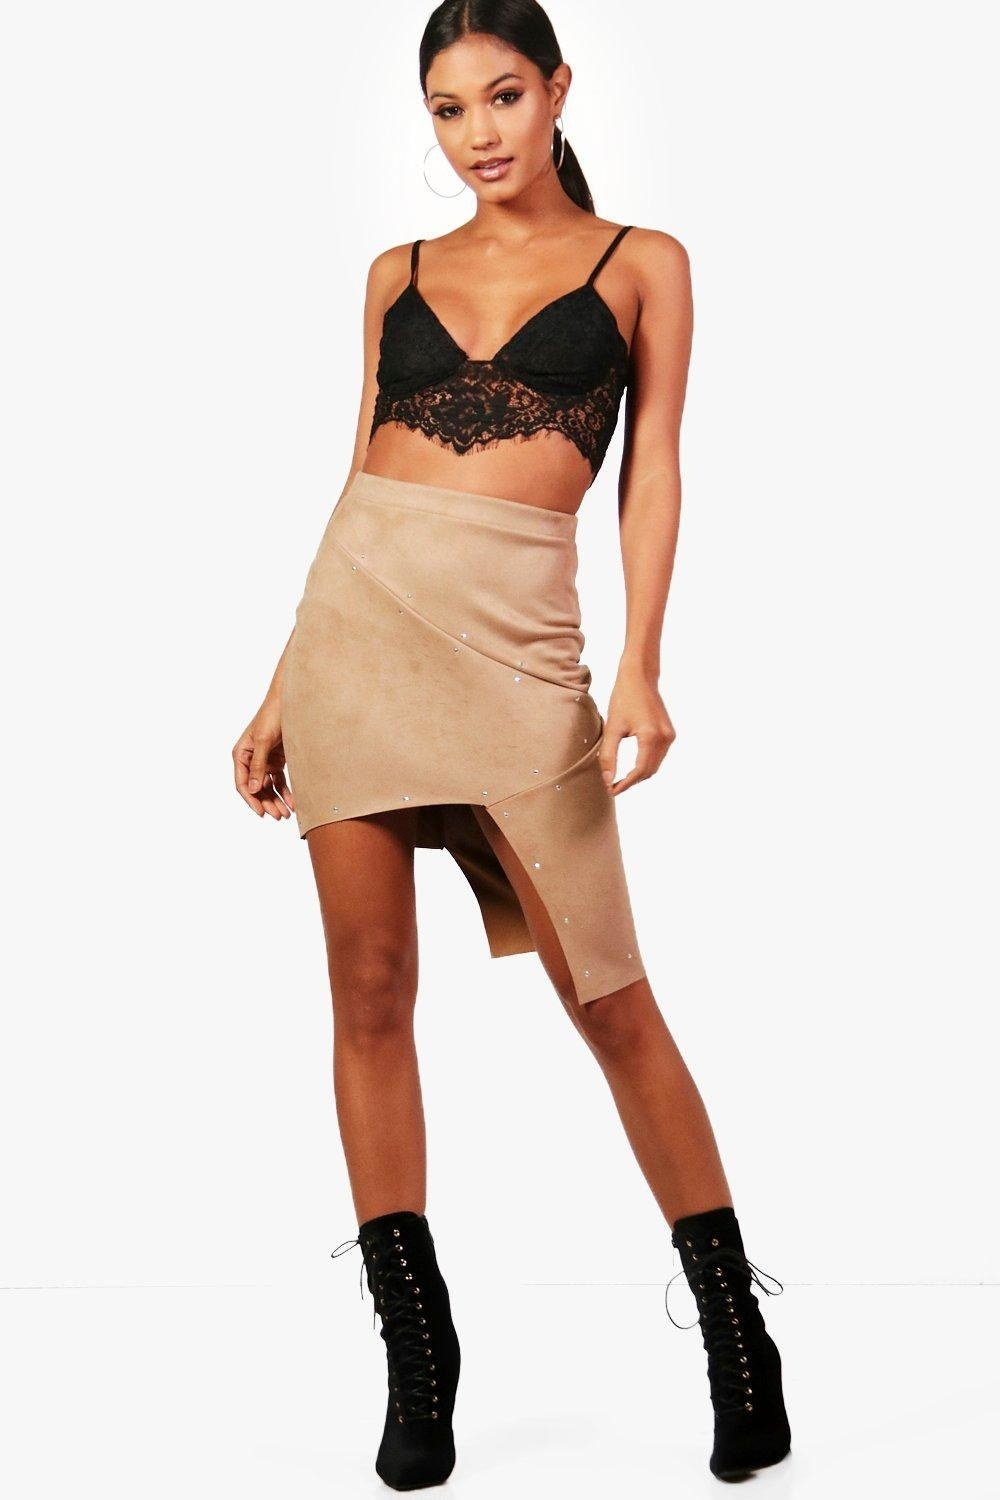 Price: $17 (originally $36; available in sizes 2-10 and in three colors)